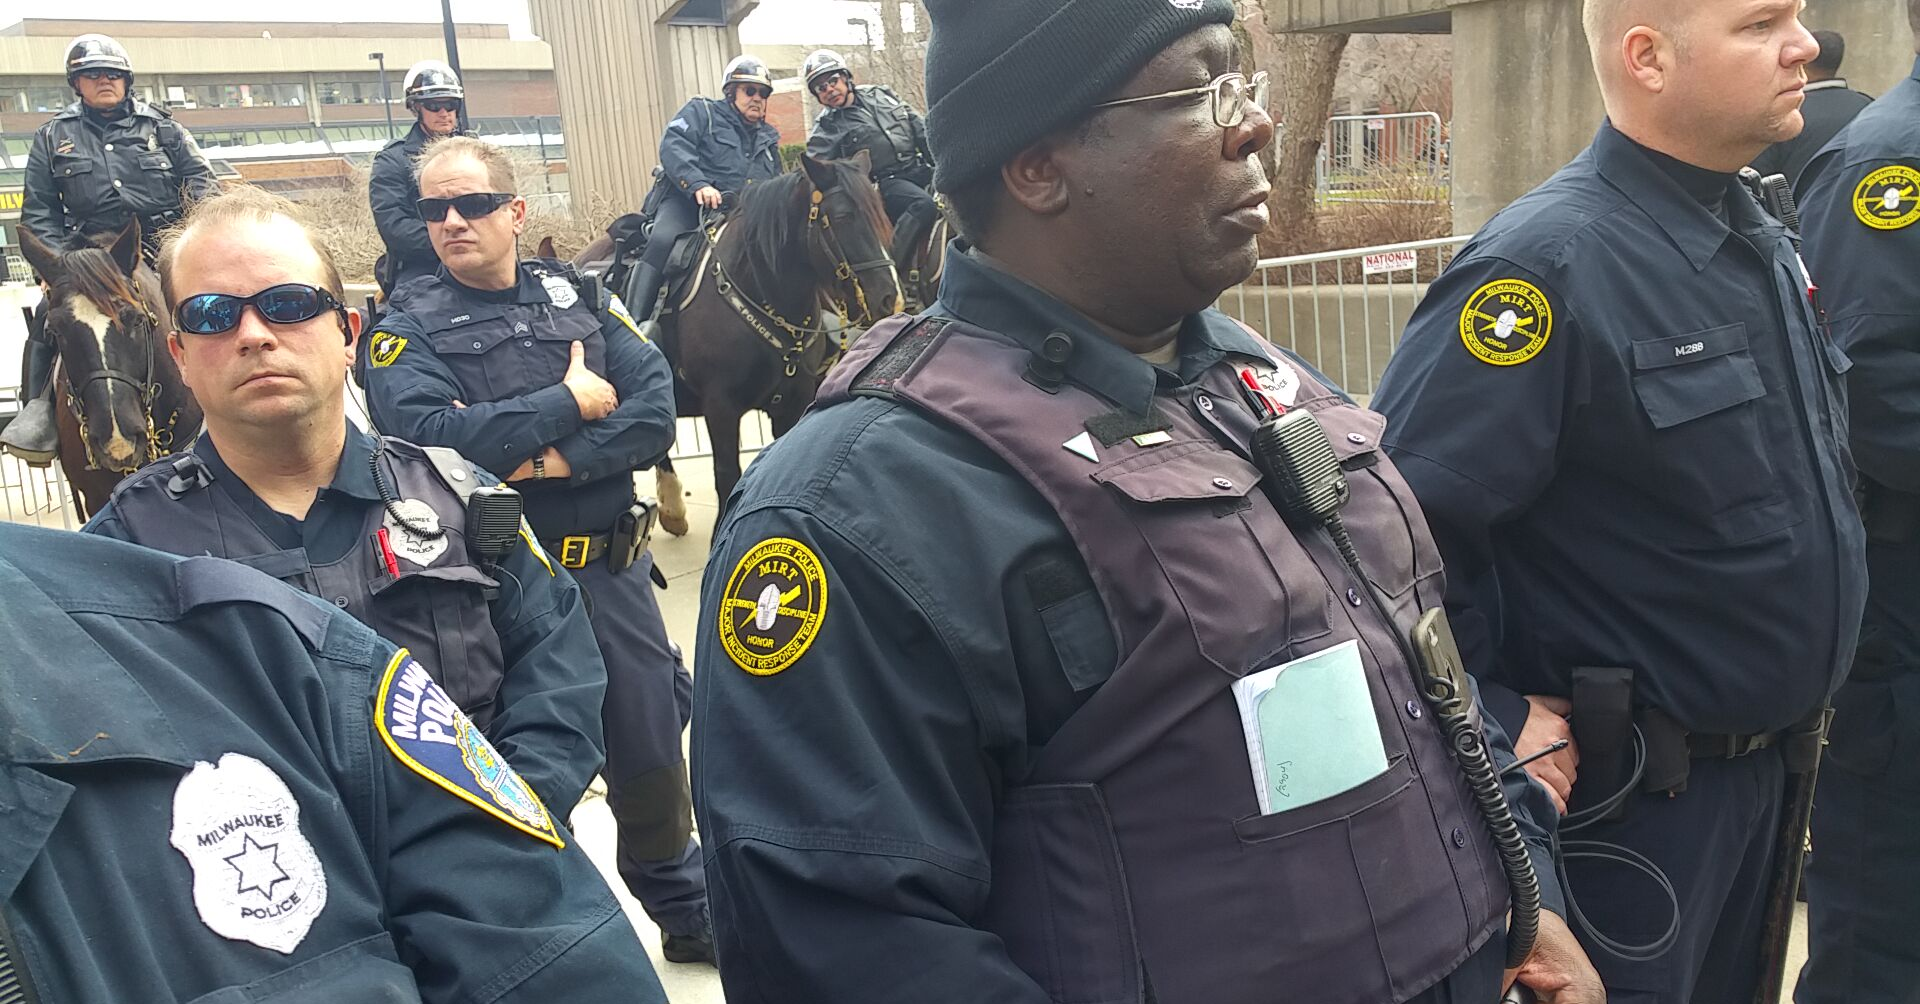 Statement from ACLU of Wisconsin on MPD's Covered Nametags at Protest